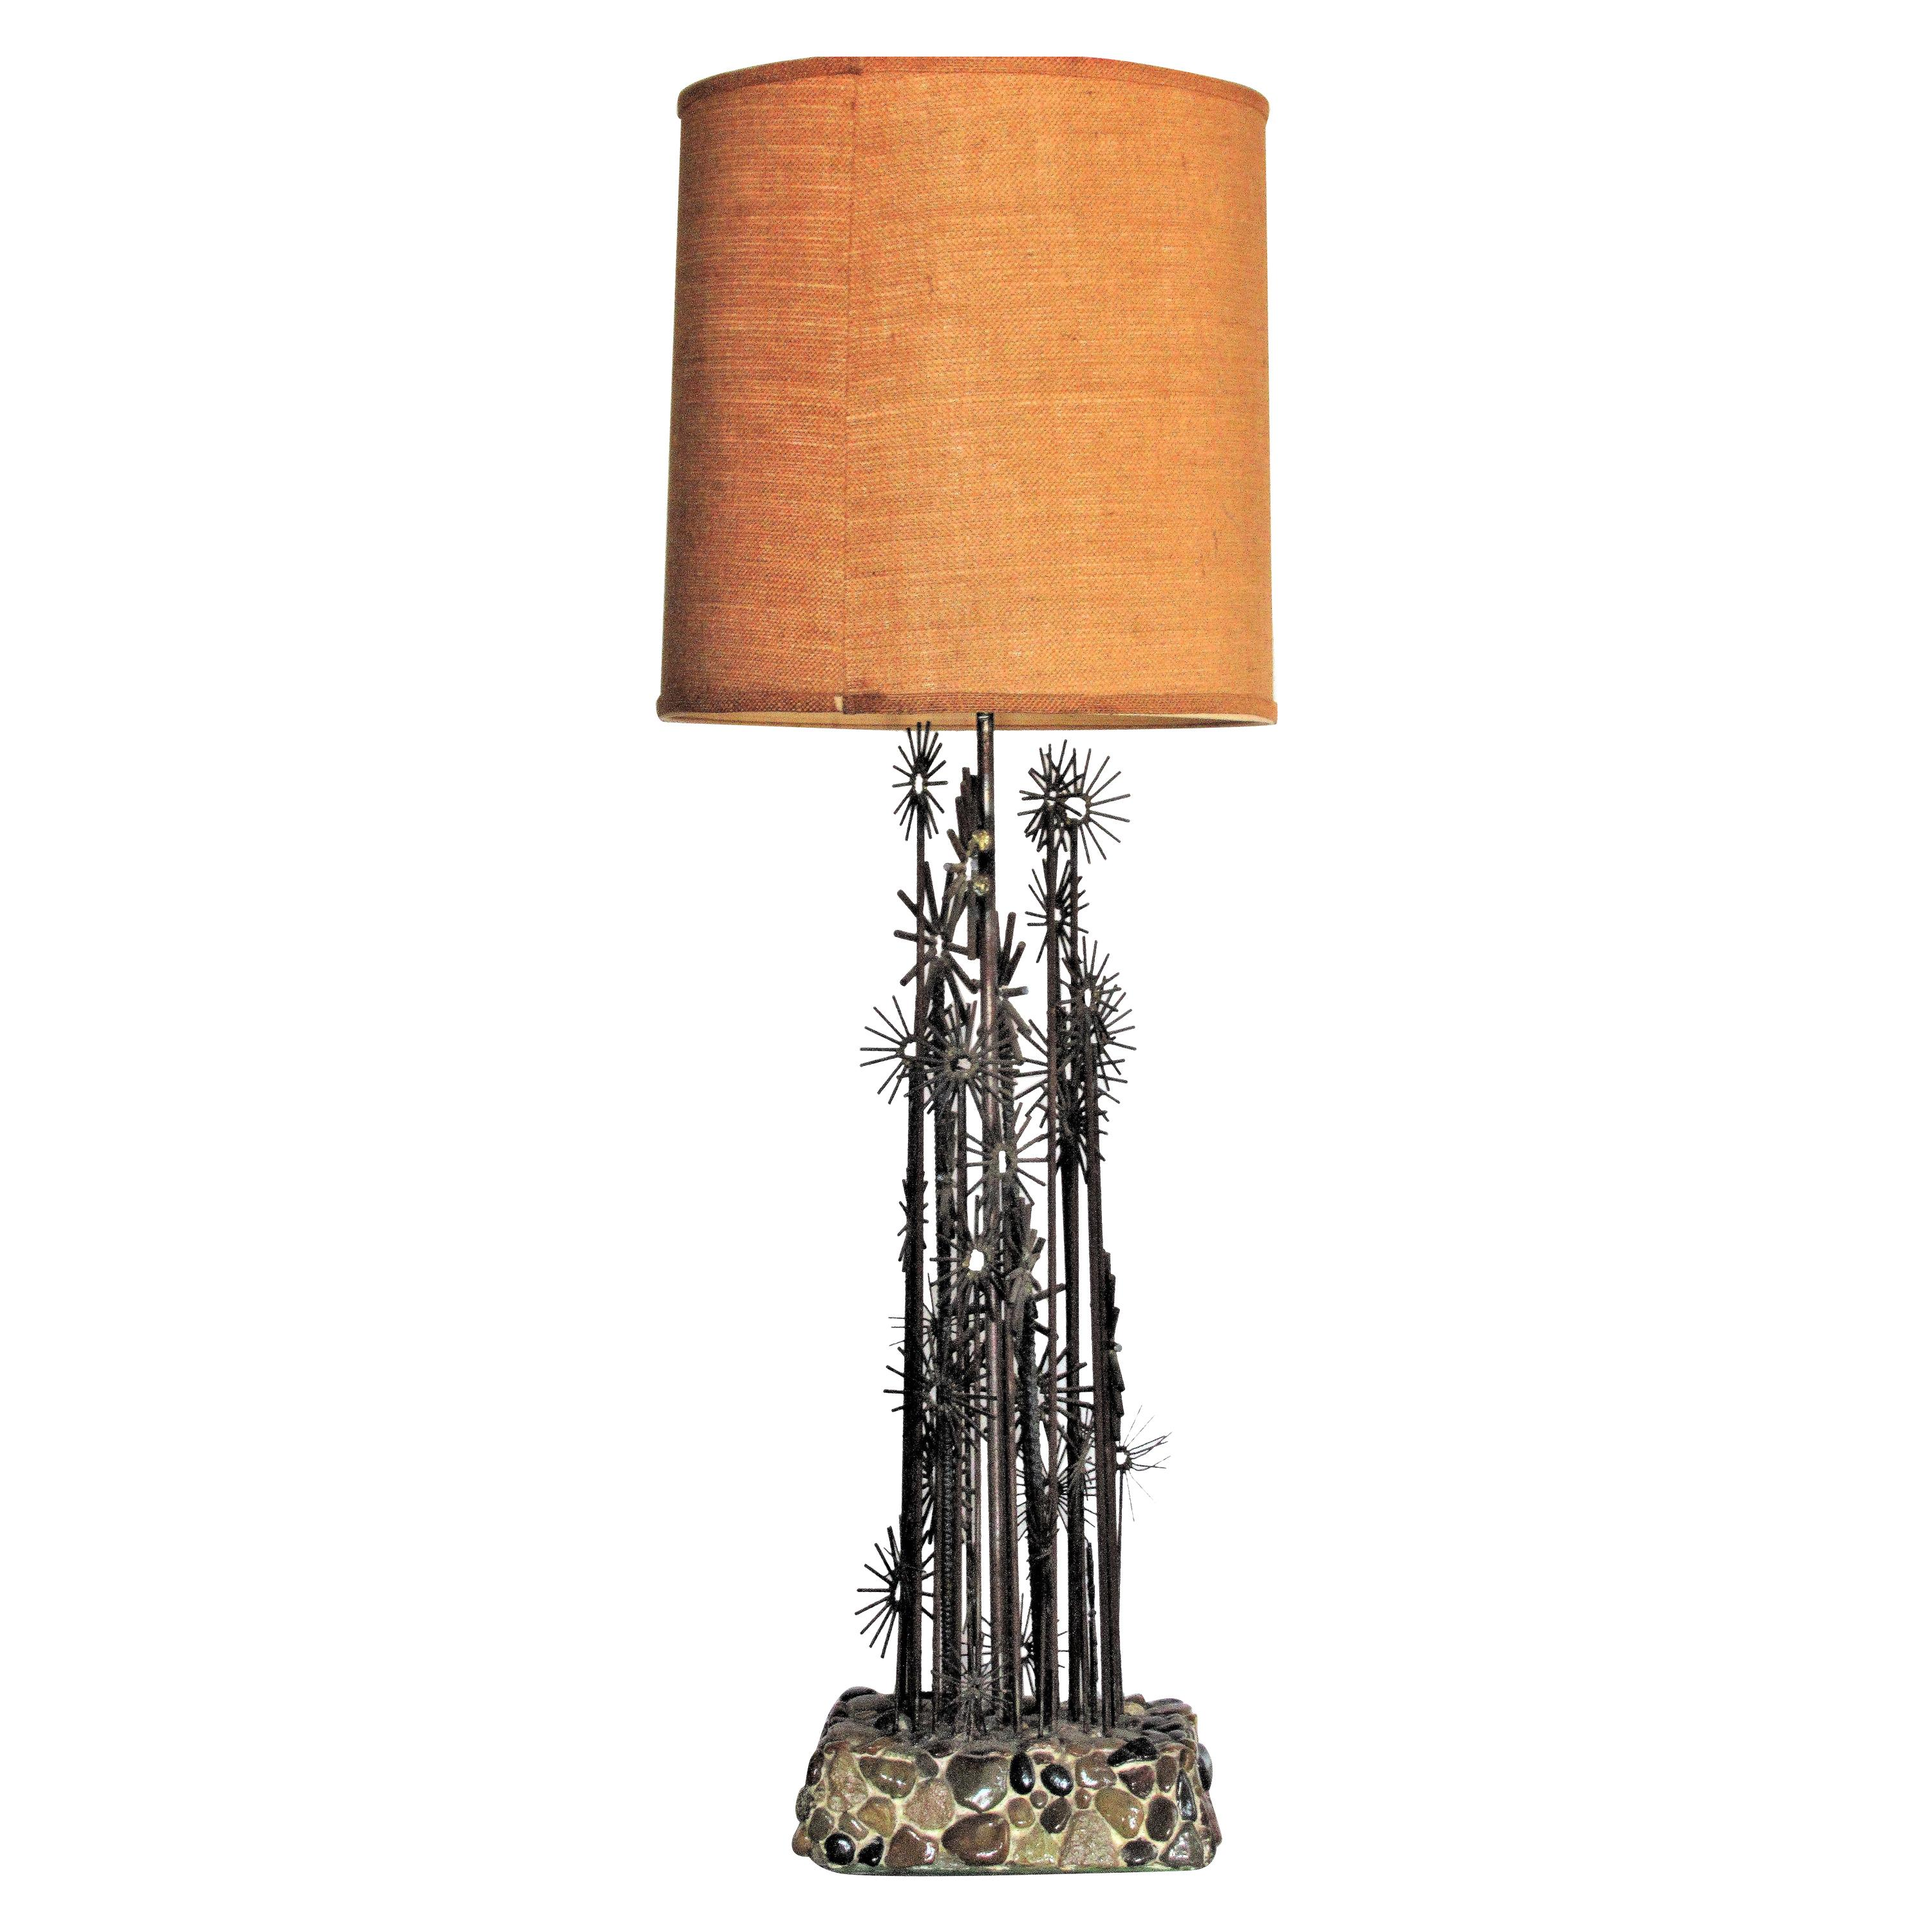 Brutalist Iron Sculpture Lamp in the style of Paul Evans